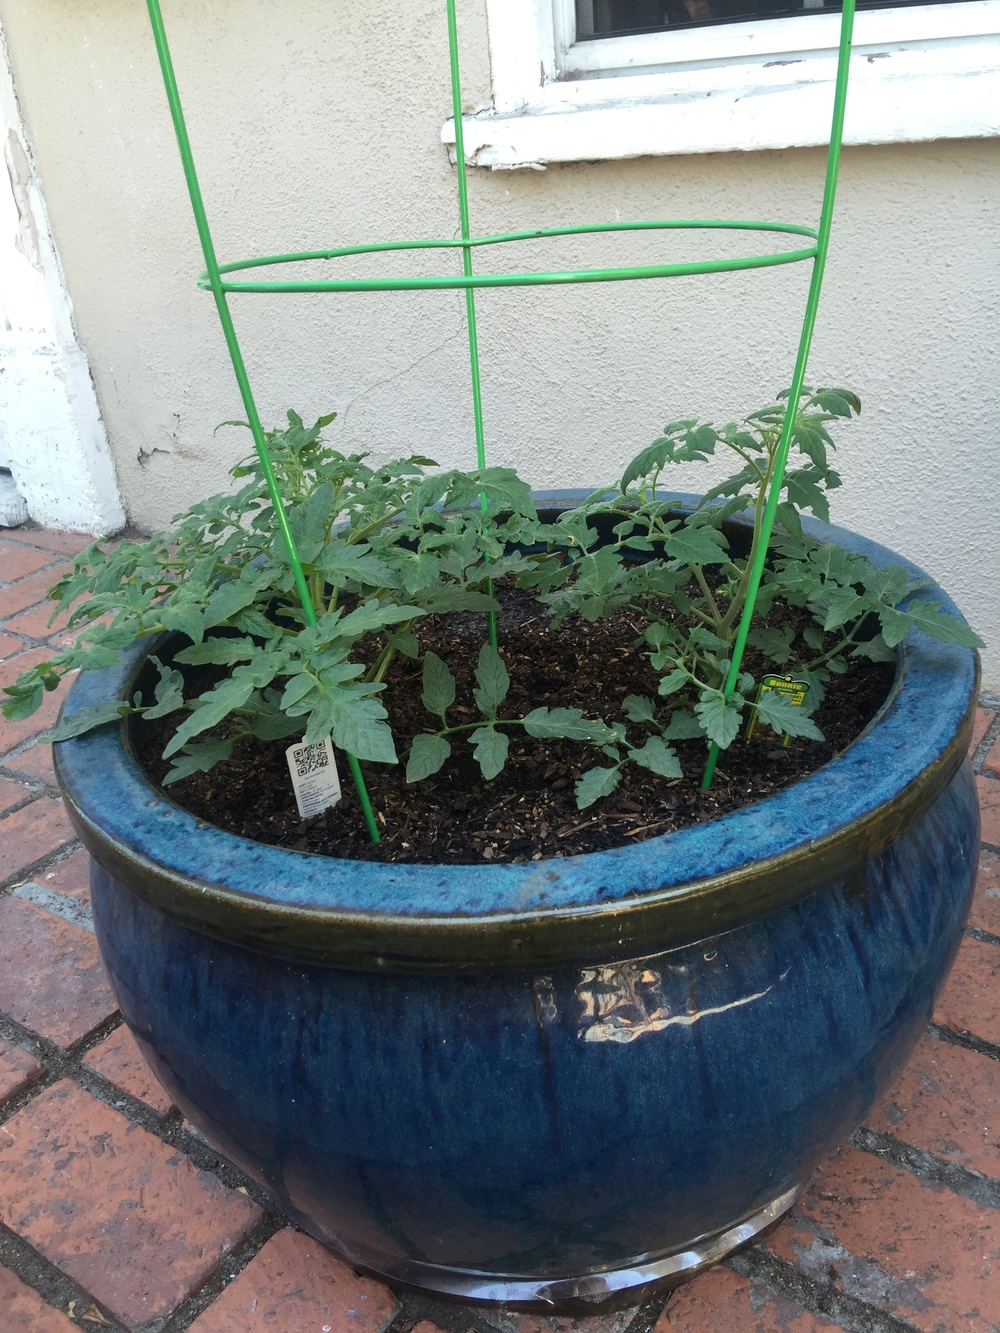 Tomatoes (planted them 10 days ago) Our first try at urban food gardening!